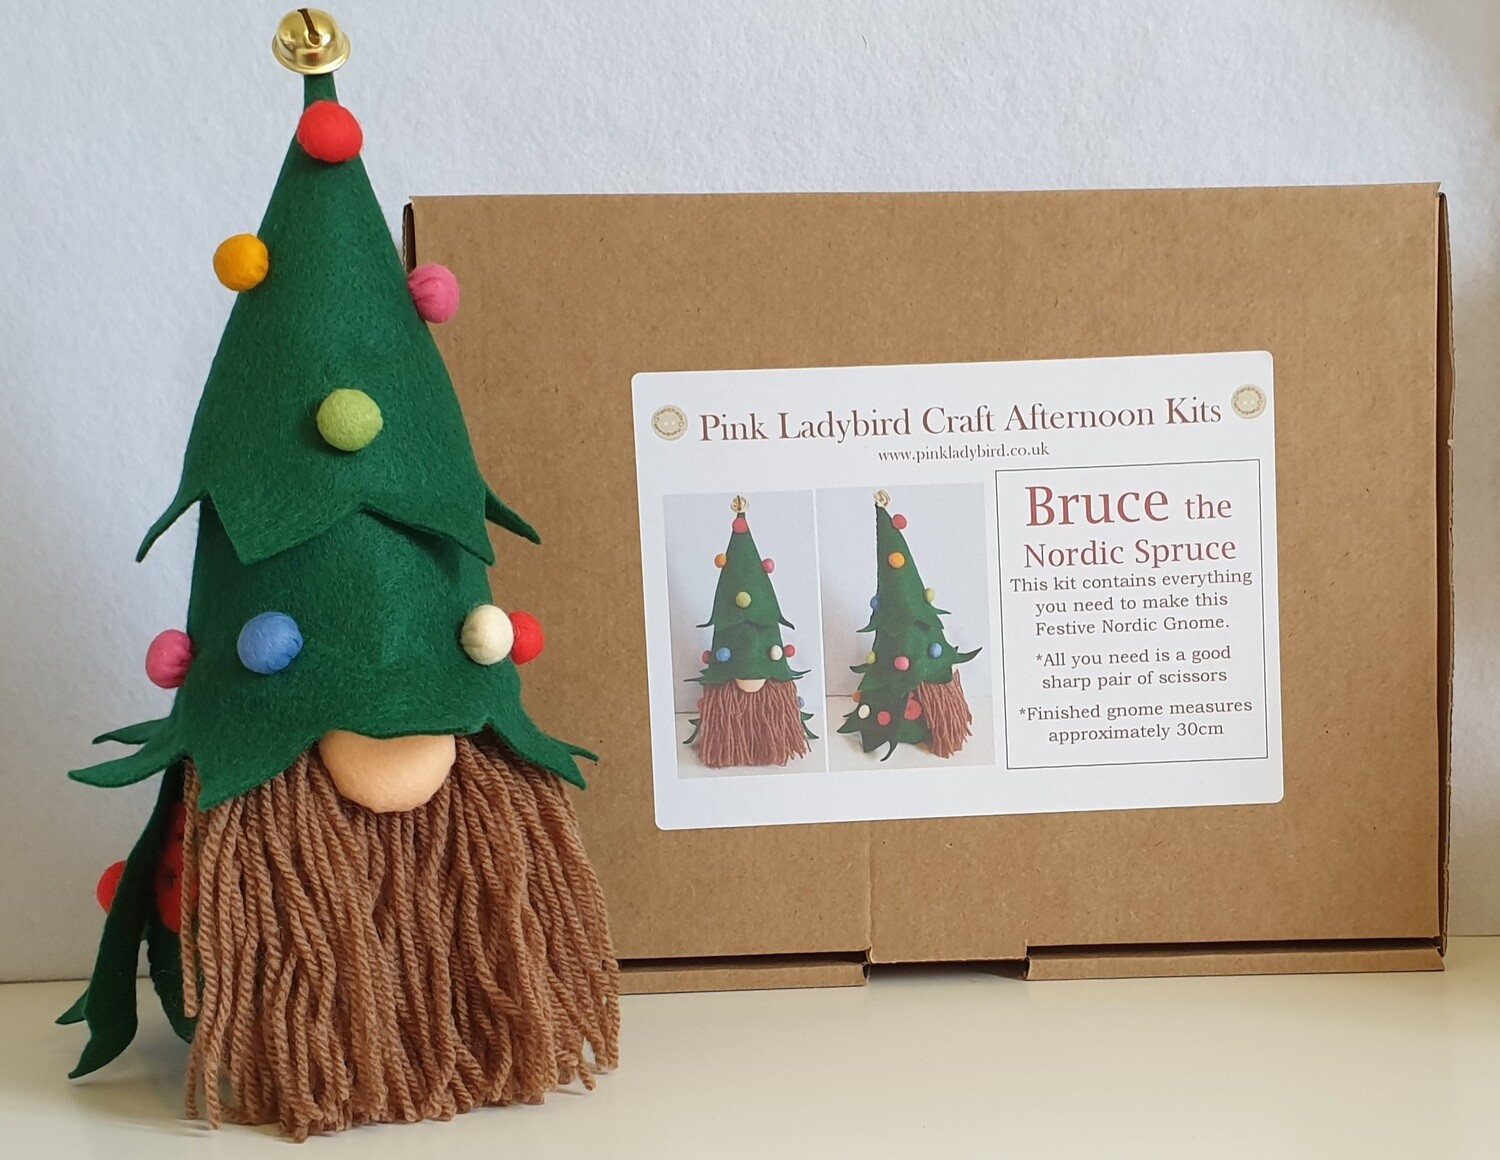 Craft Afternoon Kit - Bruce the Nordic Spruce